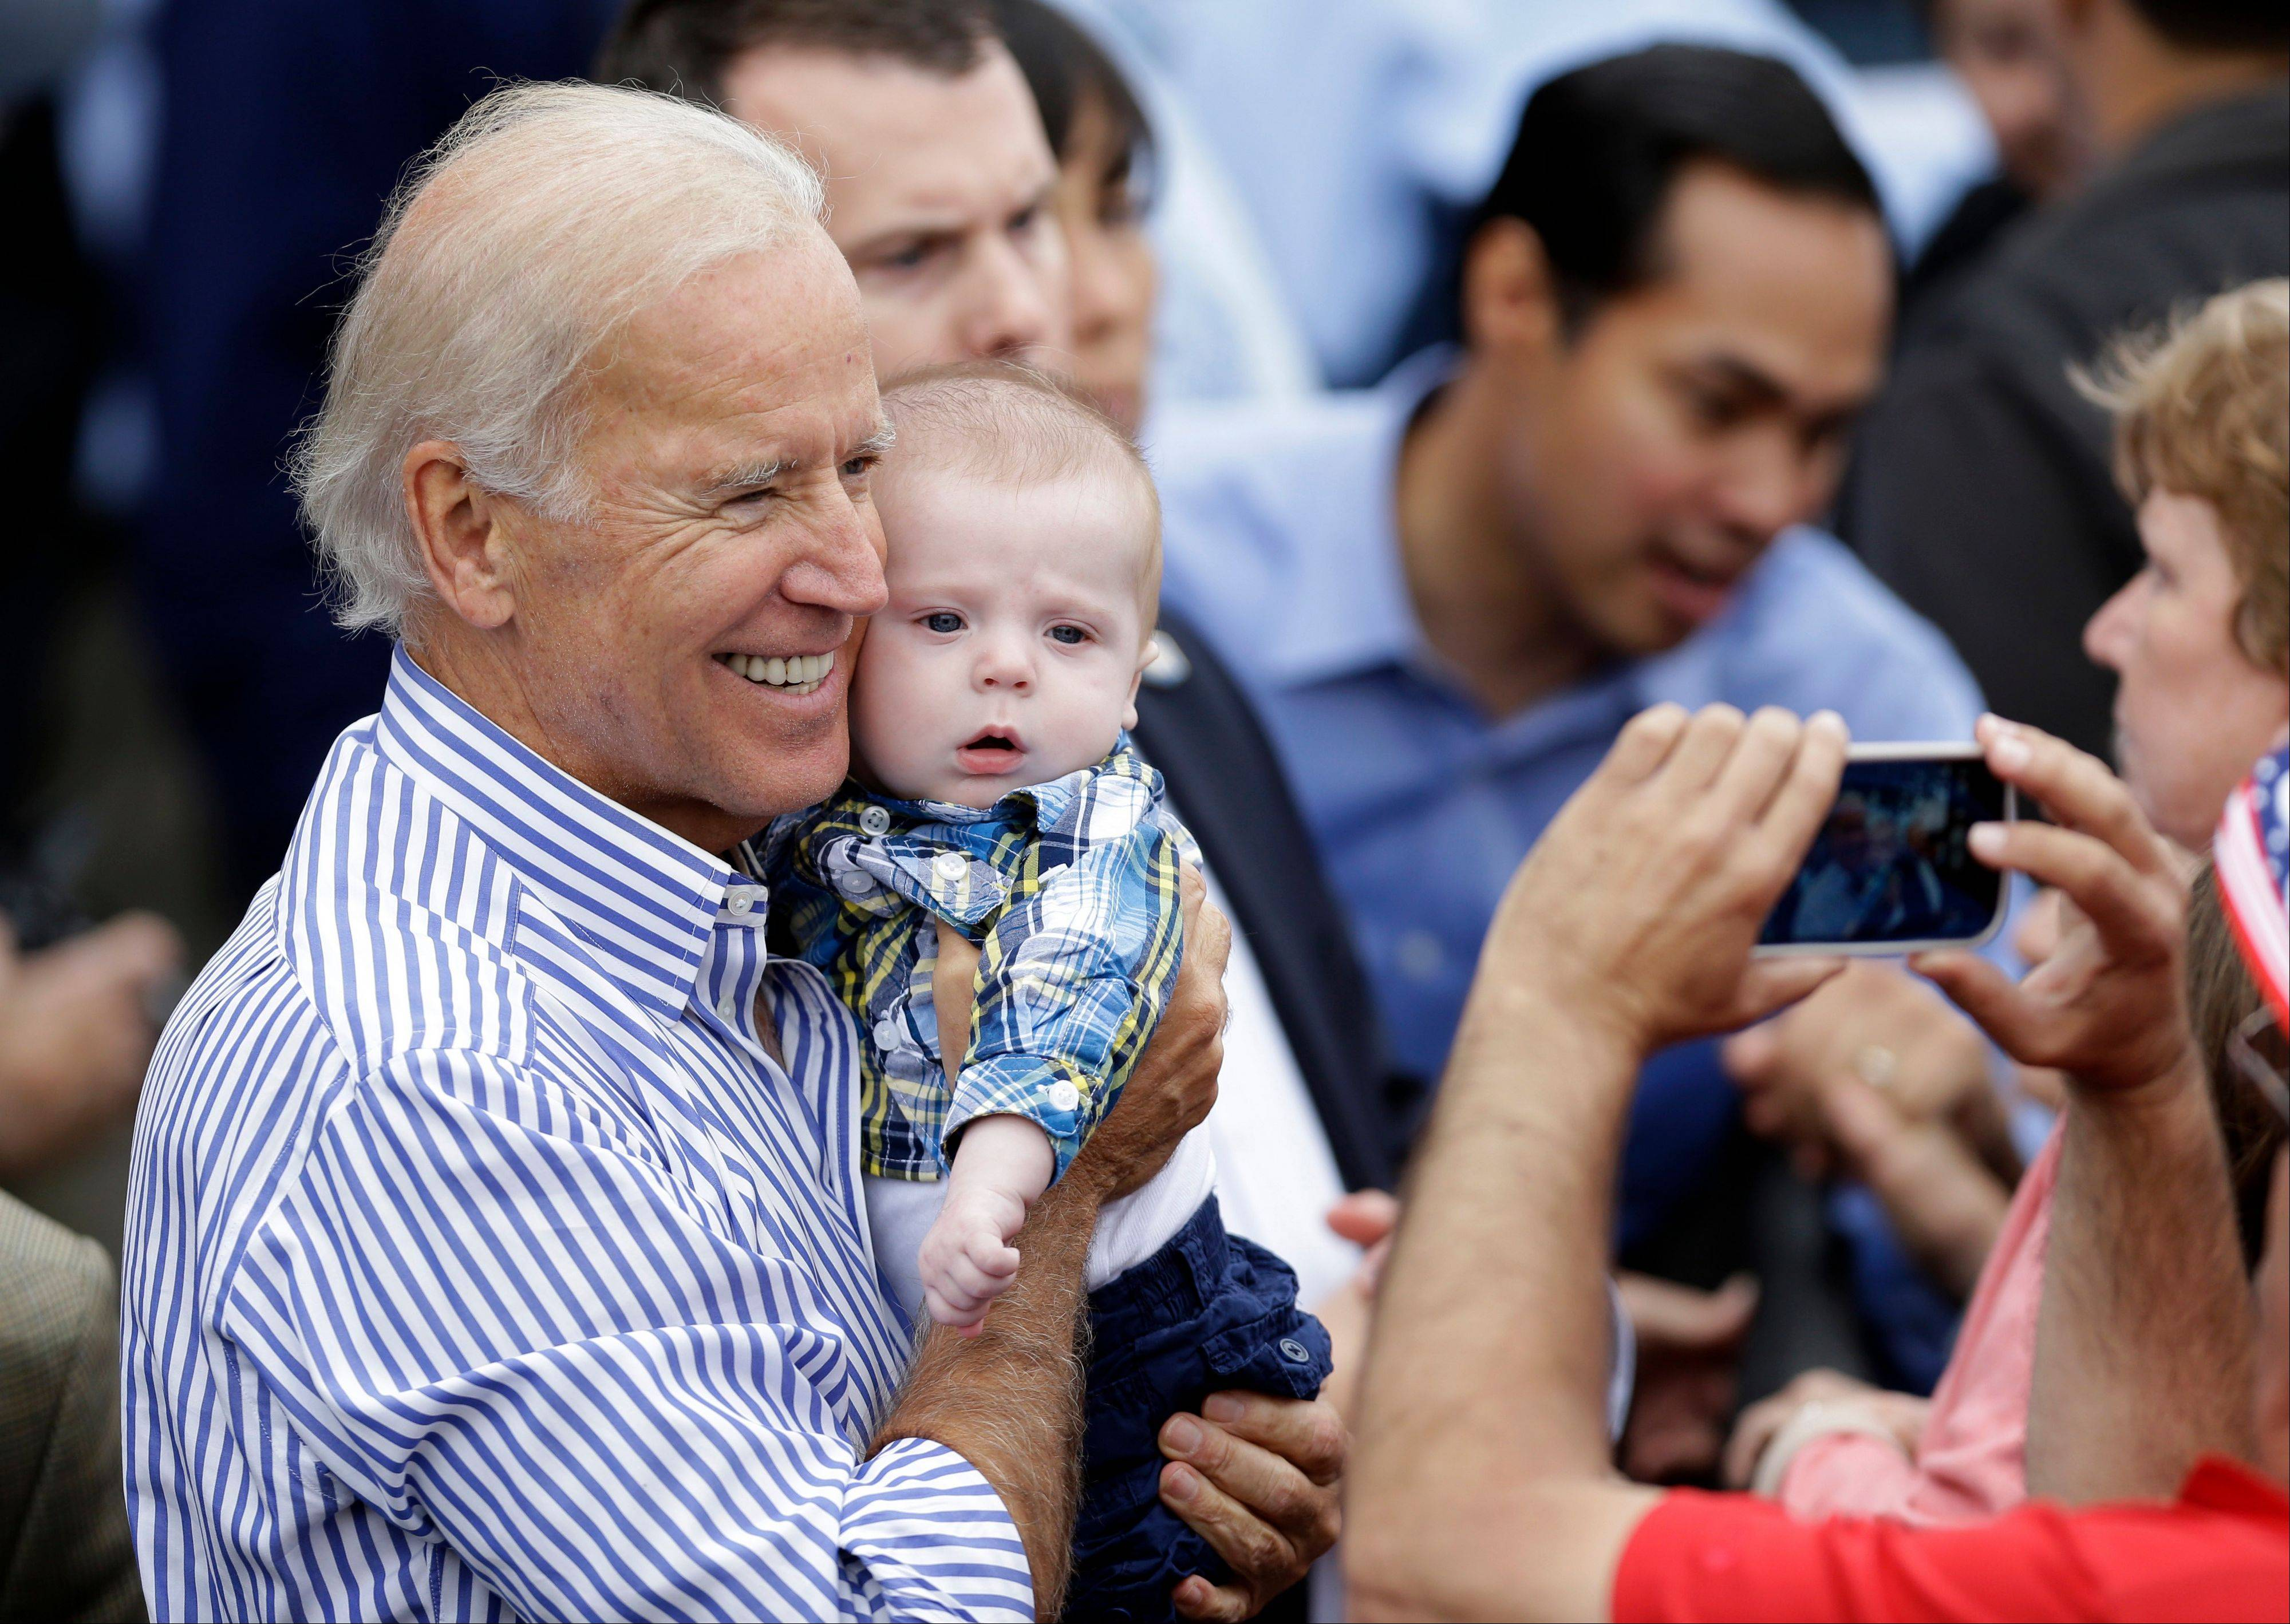 Vice President Joe Biden poses with a 5-month-old boy after speaking at Iowa Sen. Tom Harkin's annual fundraising steak fry dinner Sunday in Indianola, Iowa.